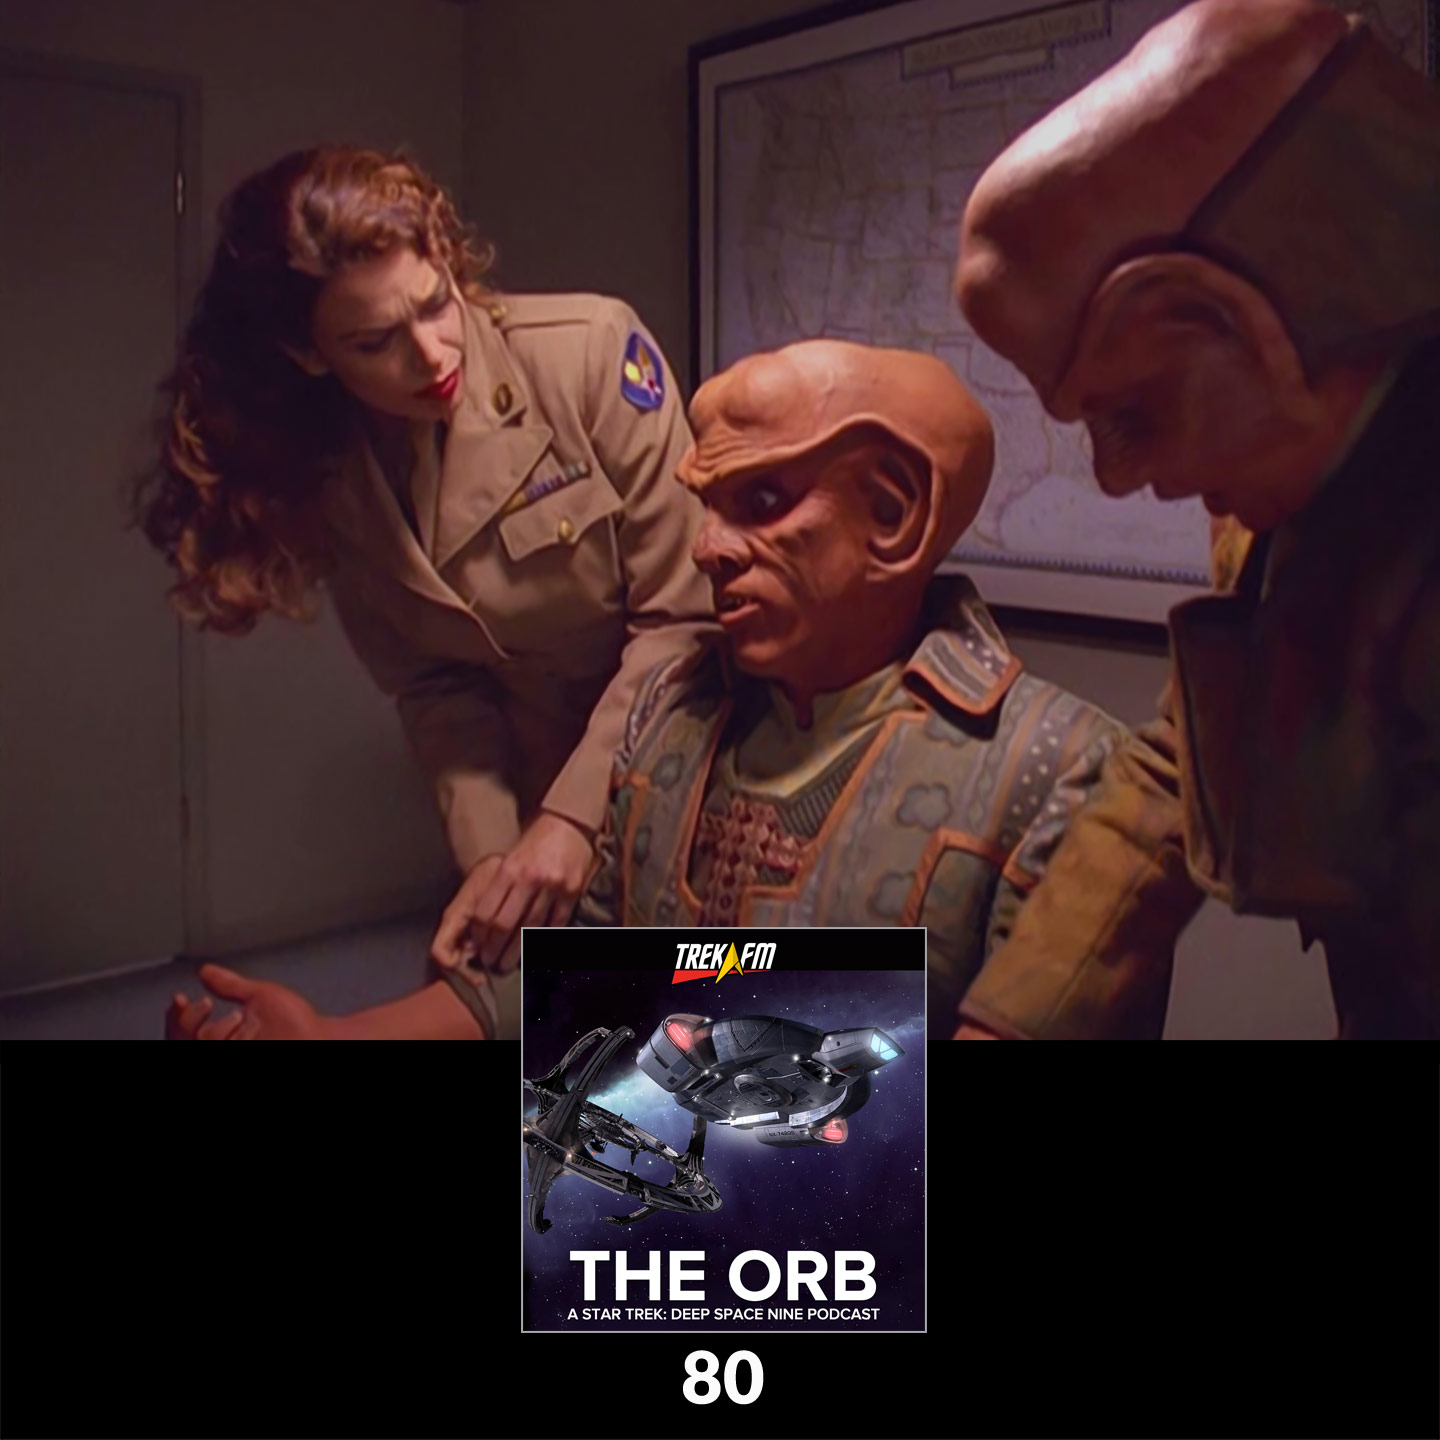 The Orb 80: You're Going to Invade Cleveland?